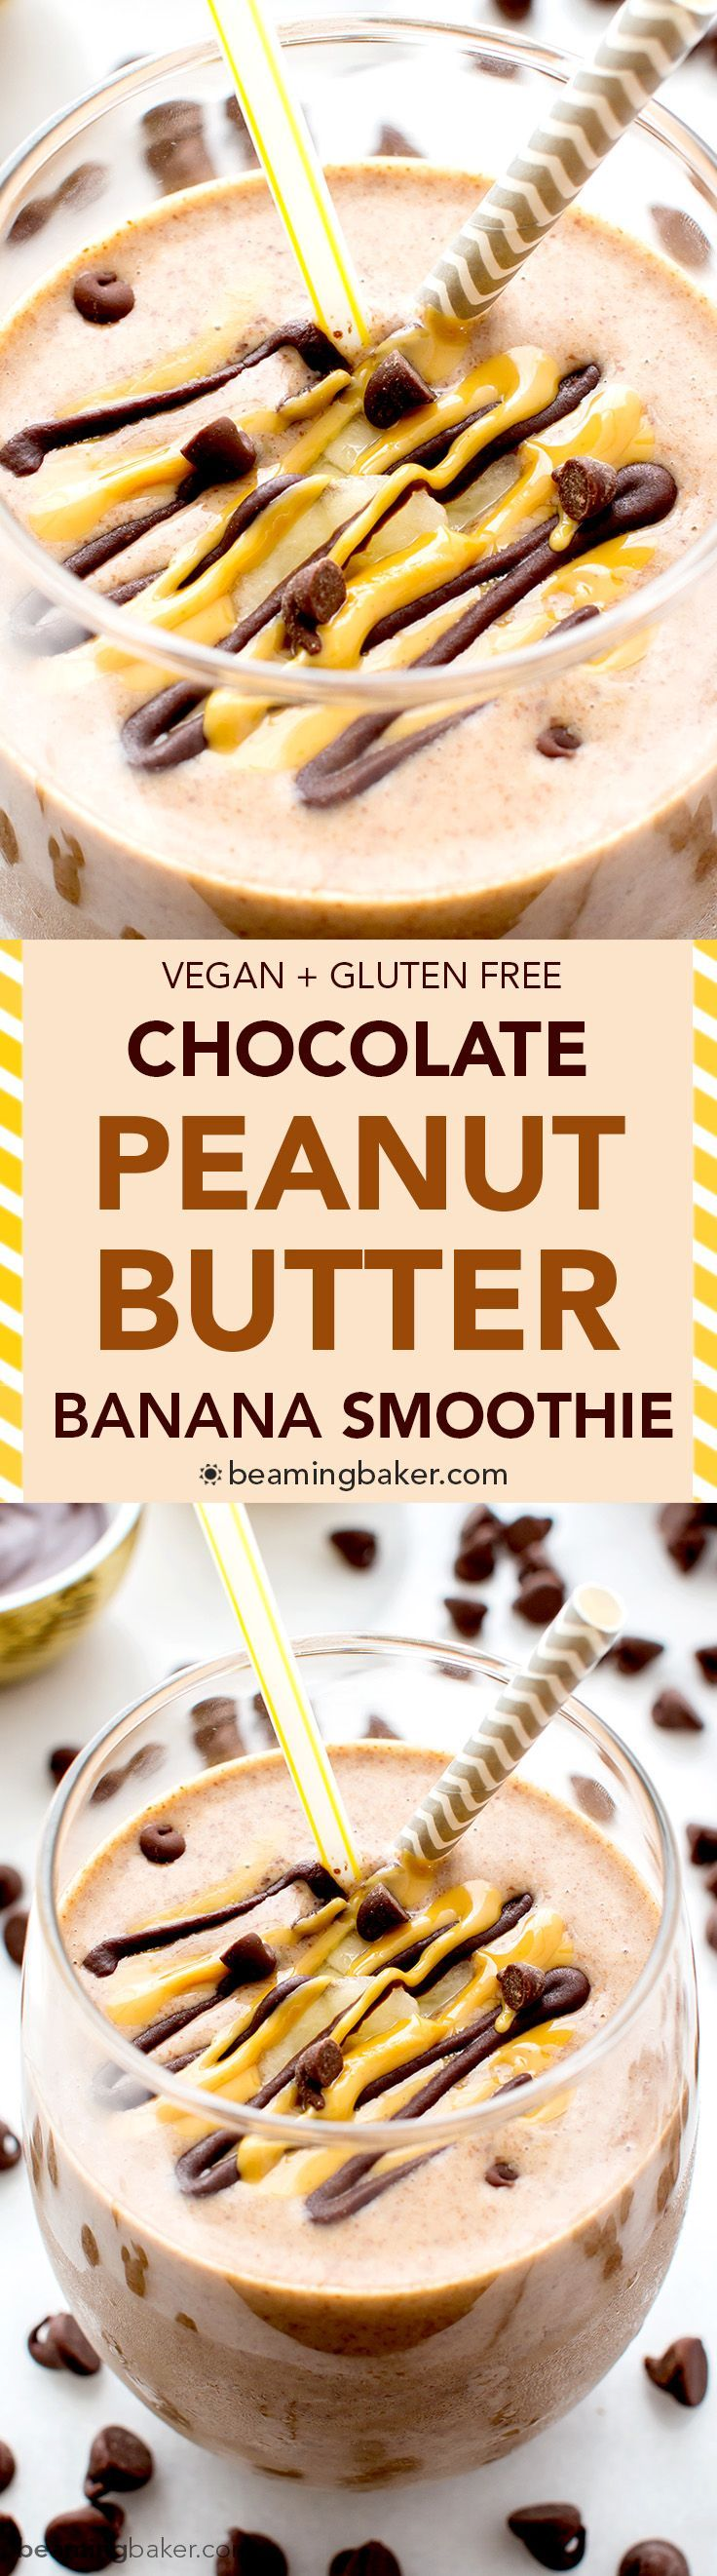 Chocolate Peanut Butter Banana Smoothie (V+GF): a protein-rich, 6-ingredient…